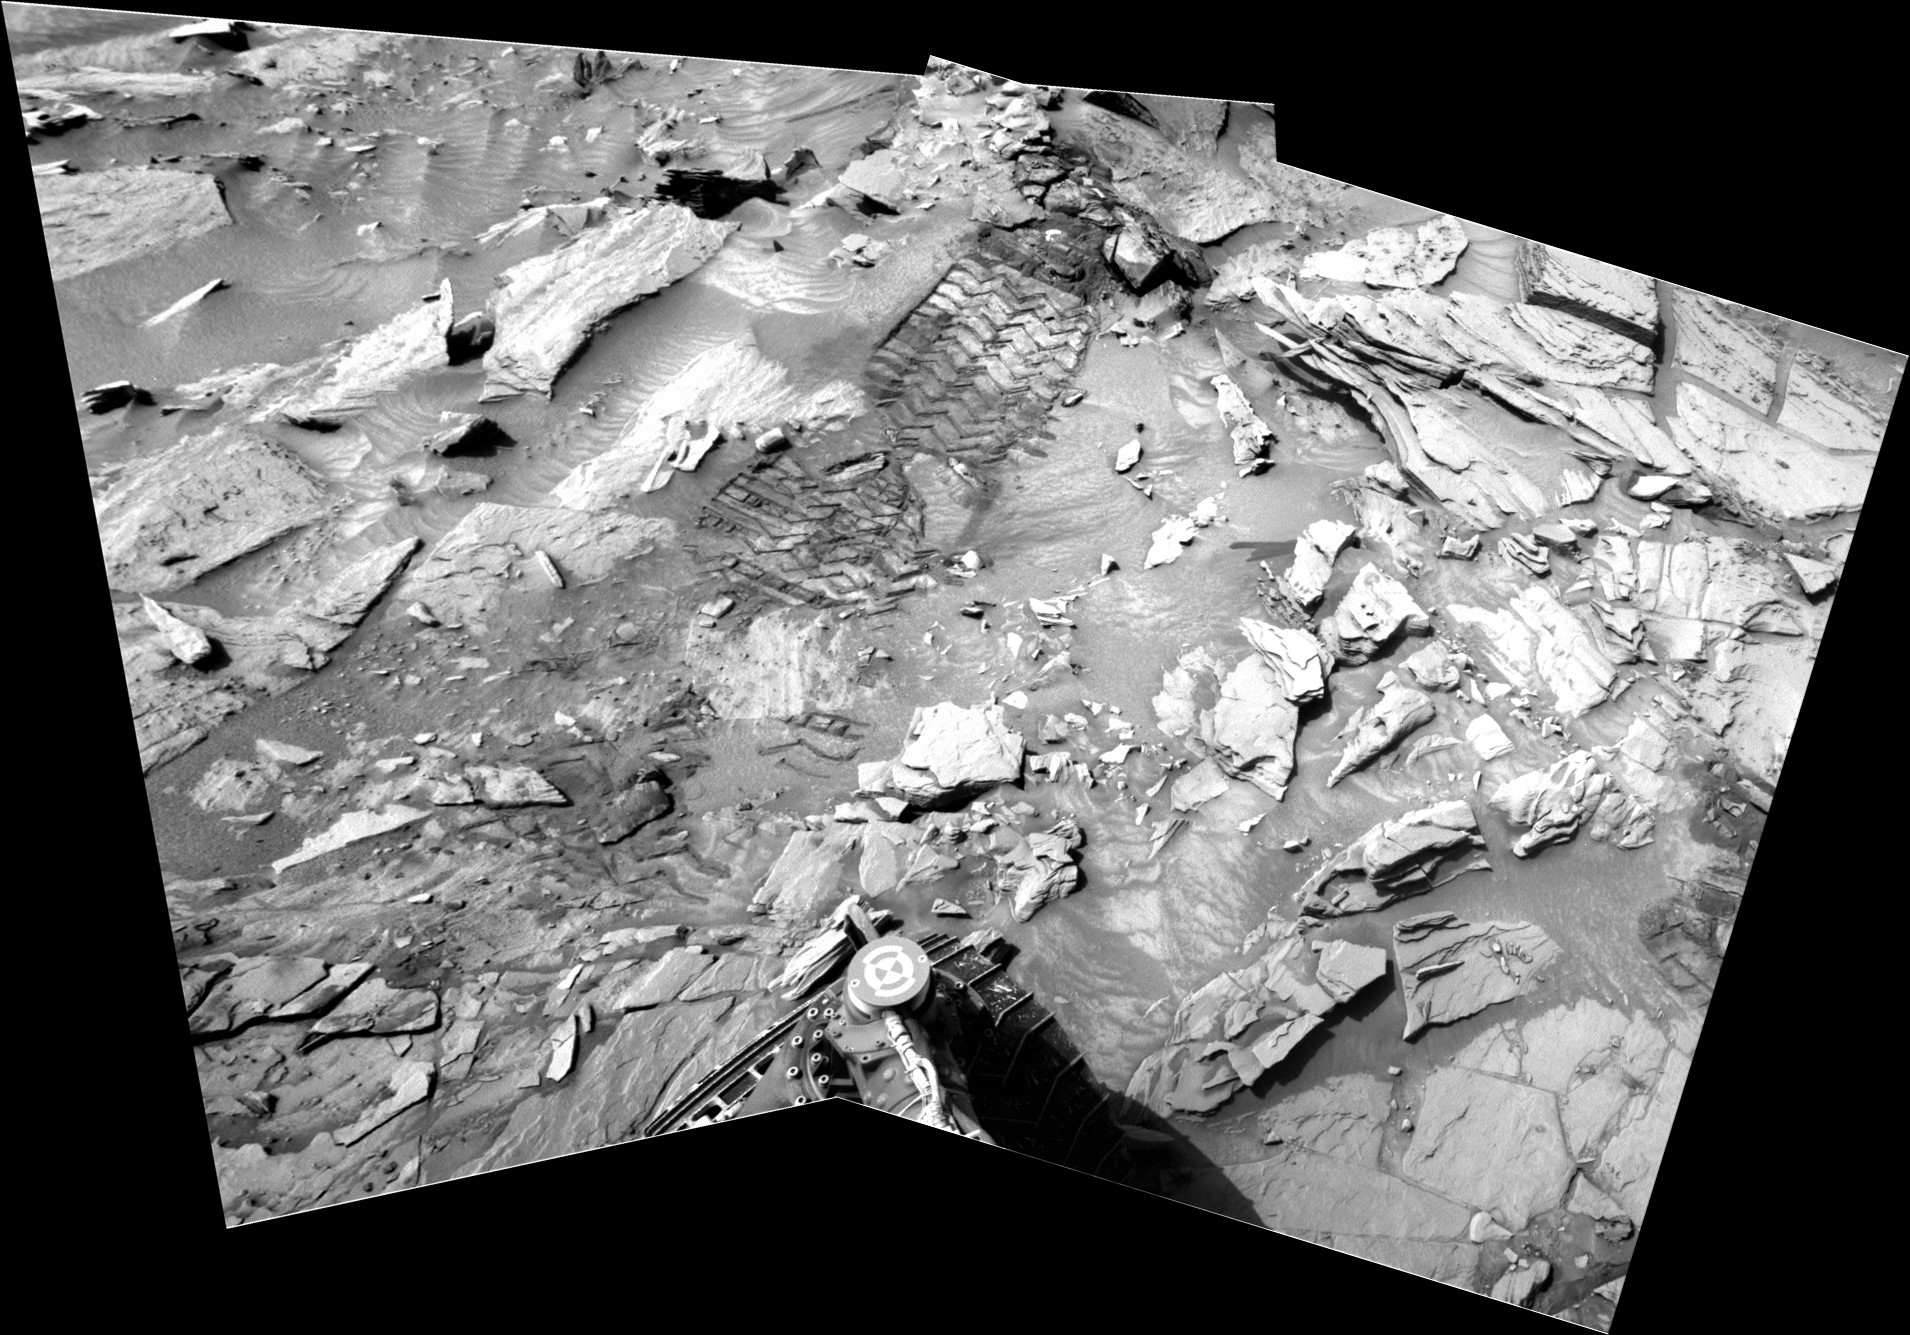 panoramic curiosity rover view b&w 4 - sol 1344 - was life on mars